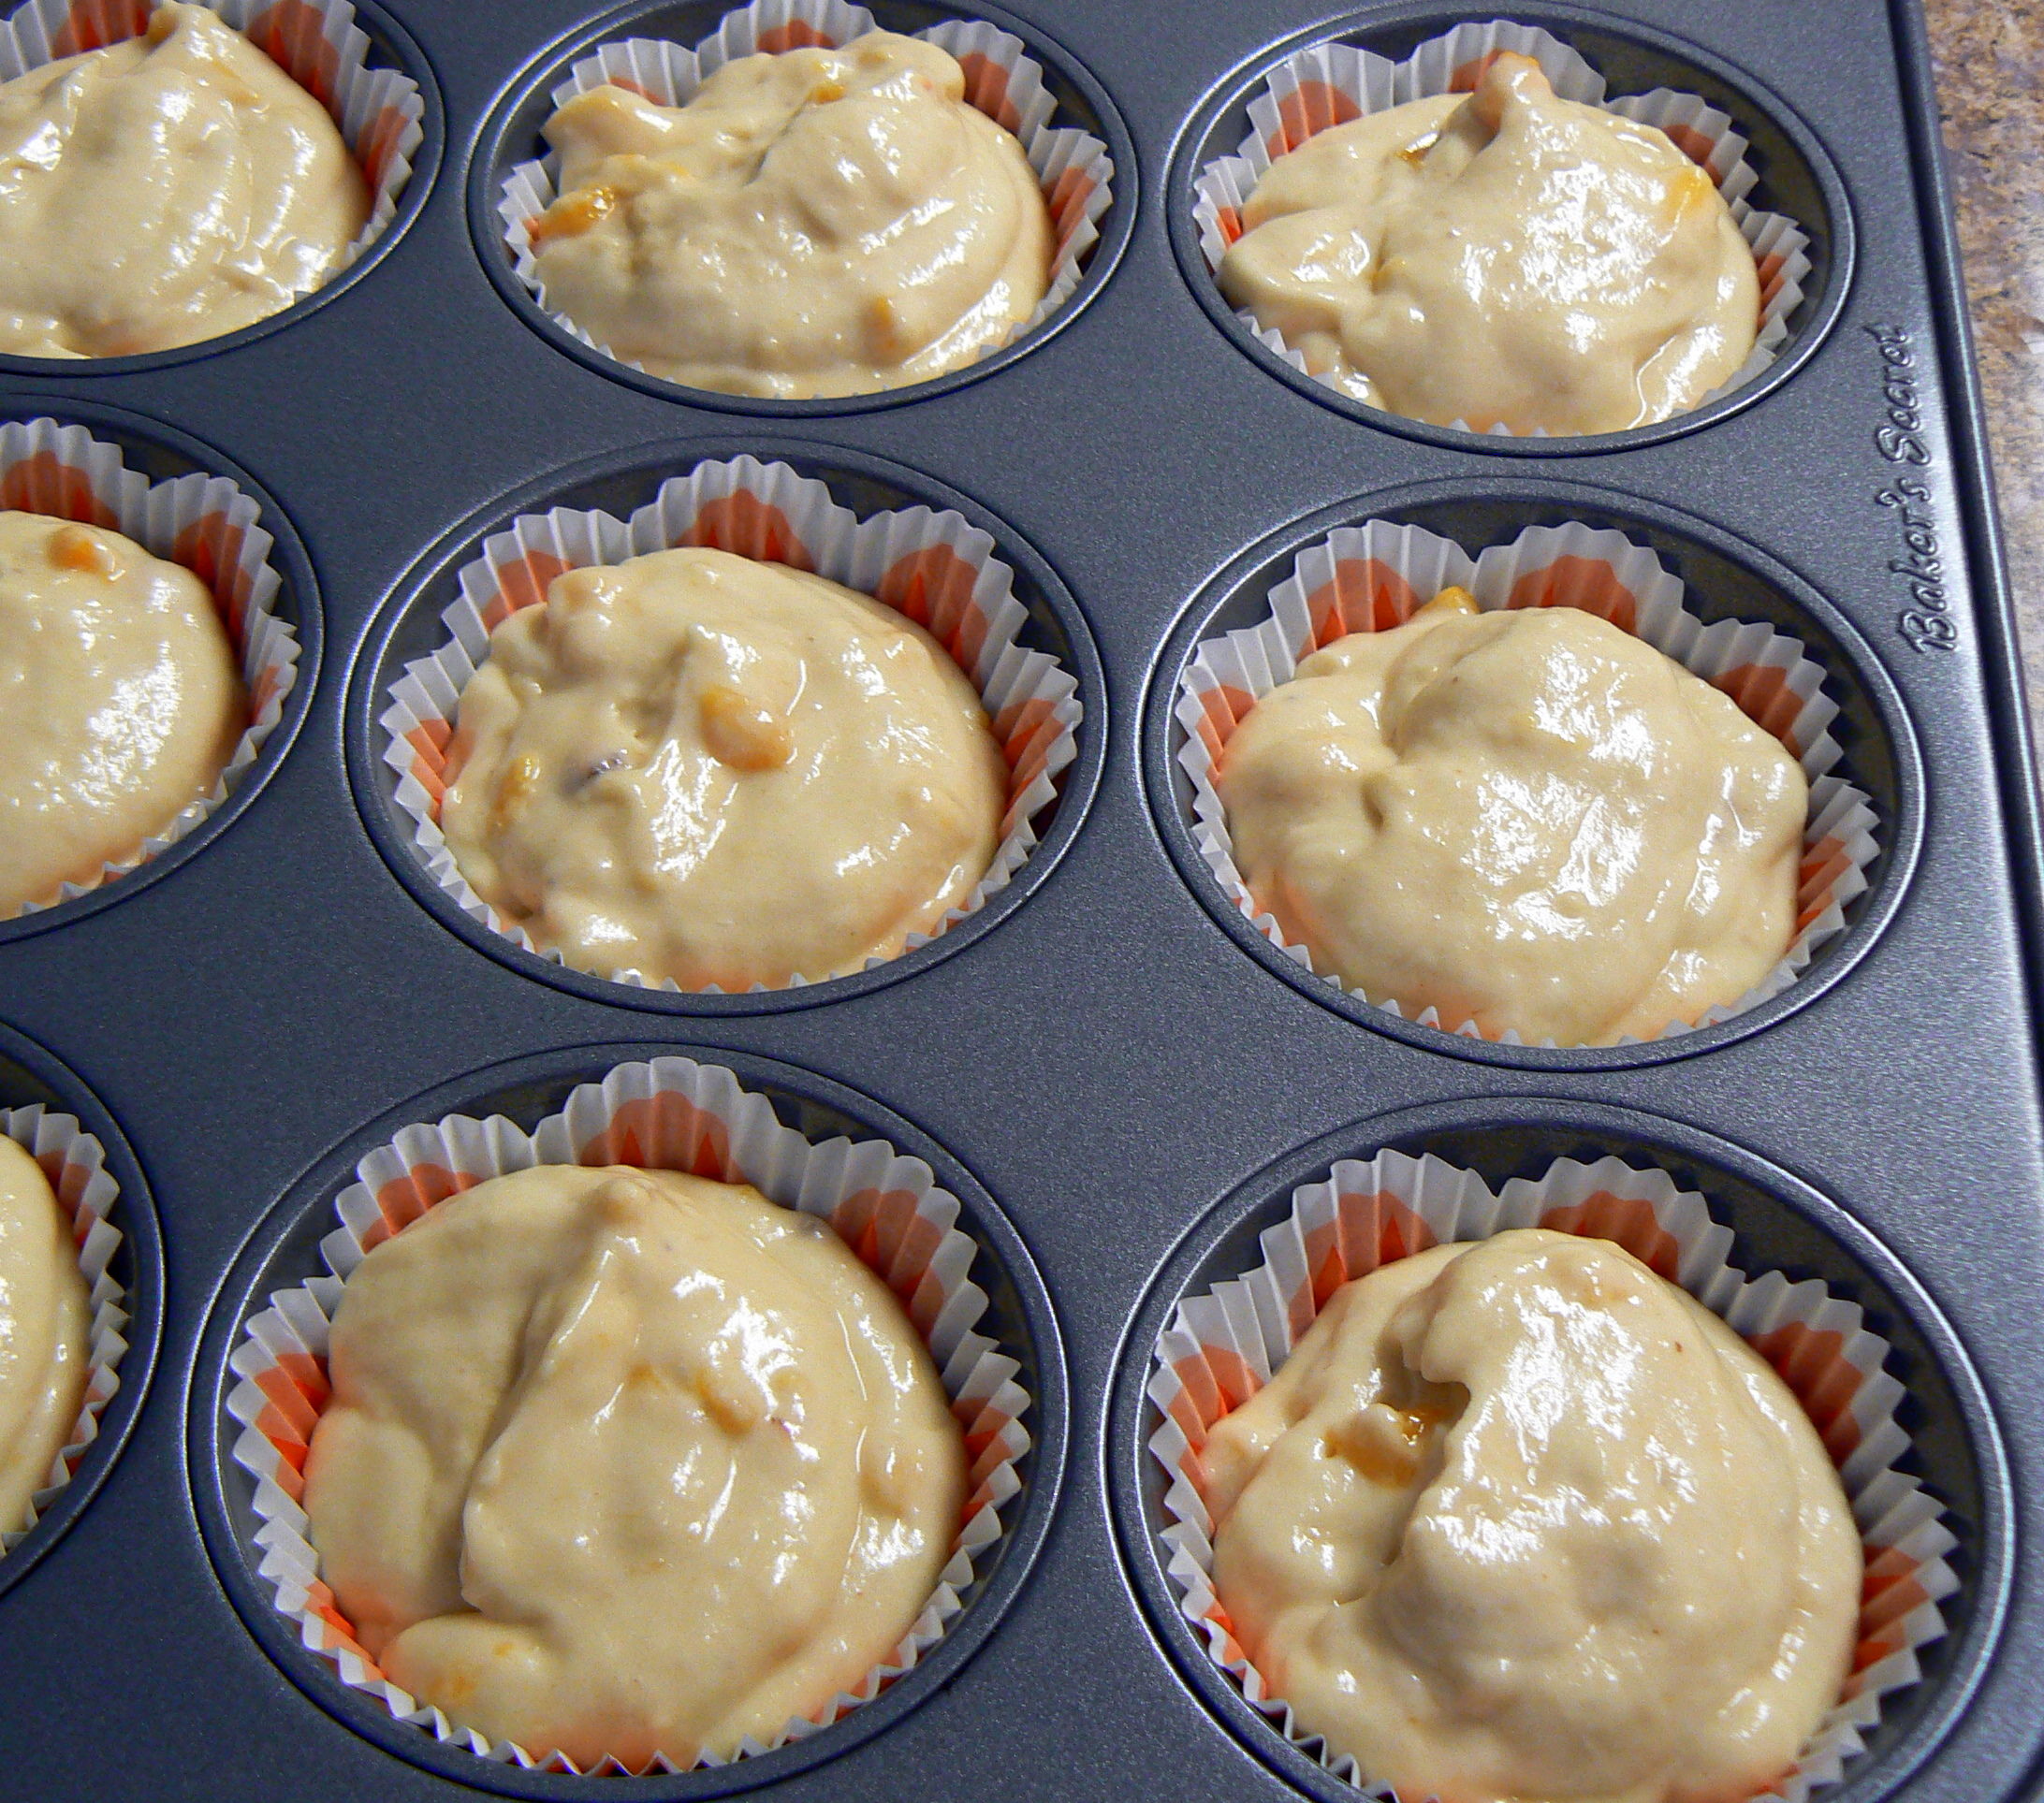 Peach cupcakes with brown sugar, peach schnapps frosting | Jamie Cakes